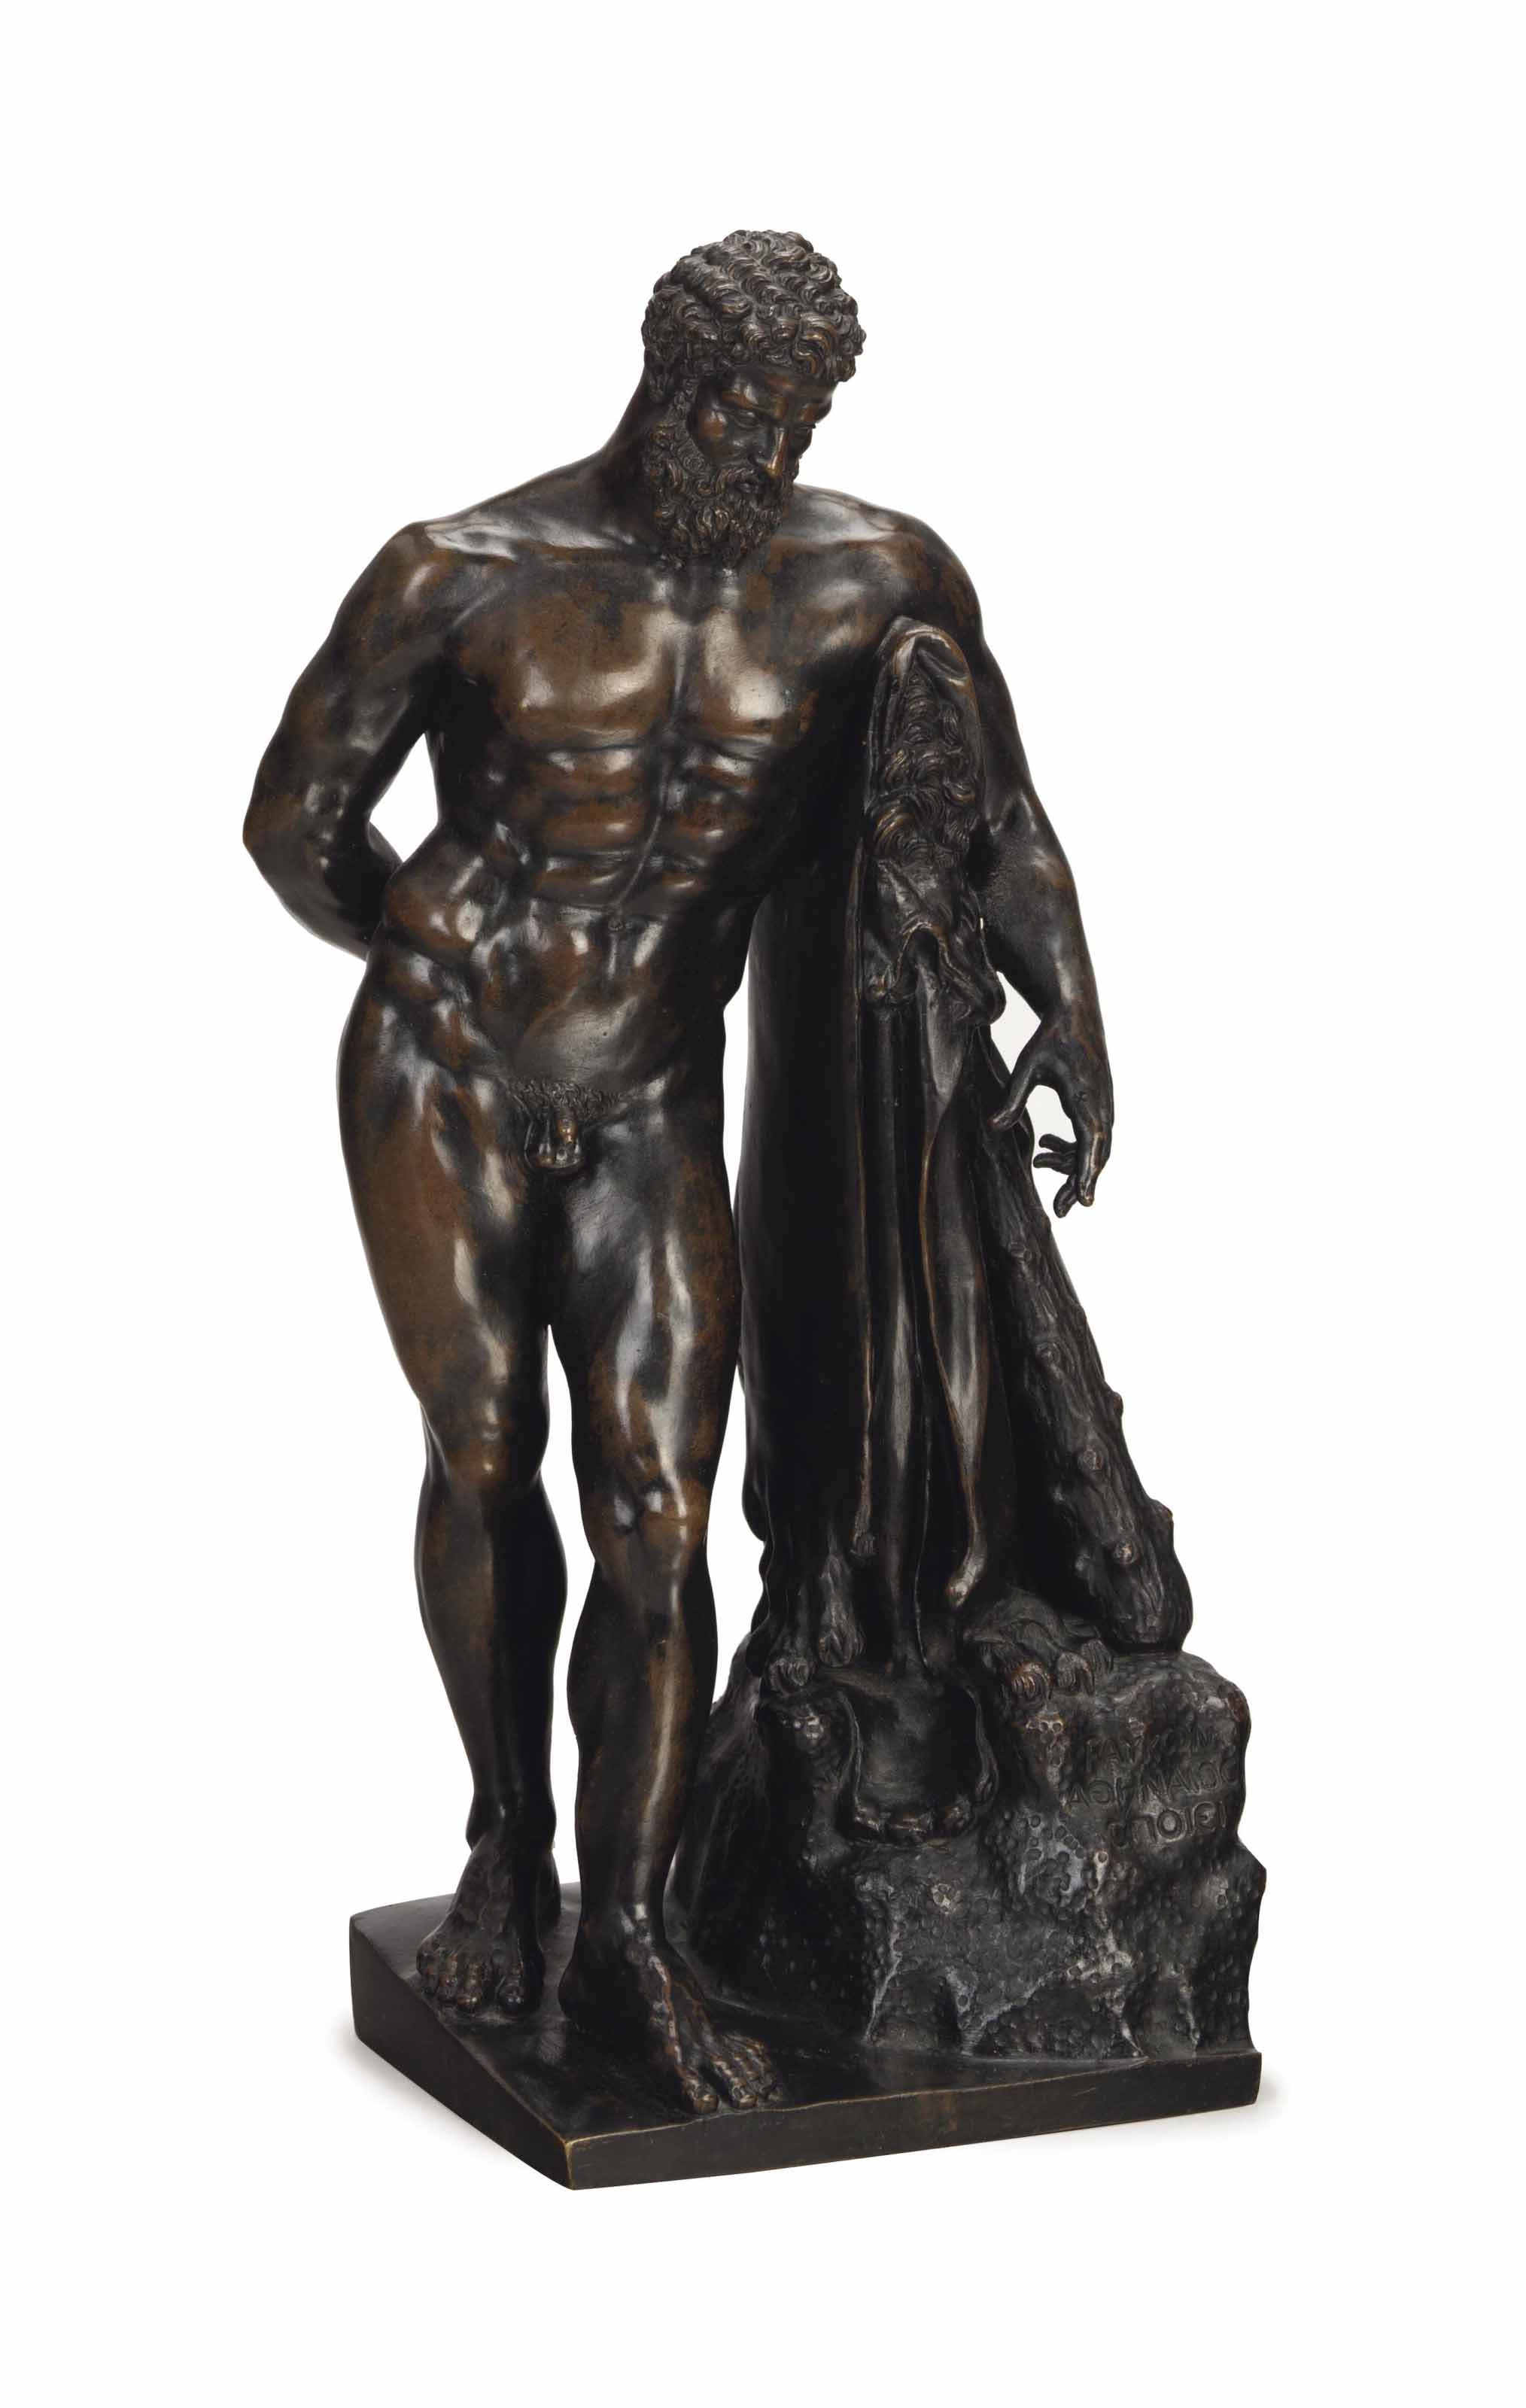 AN ITALIAN PATINATED-BRONZE FI